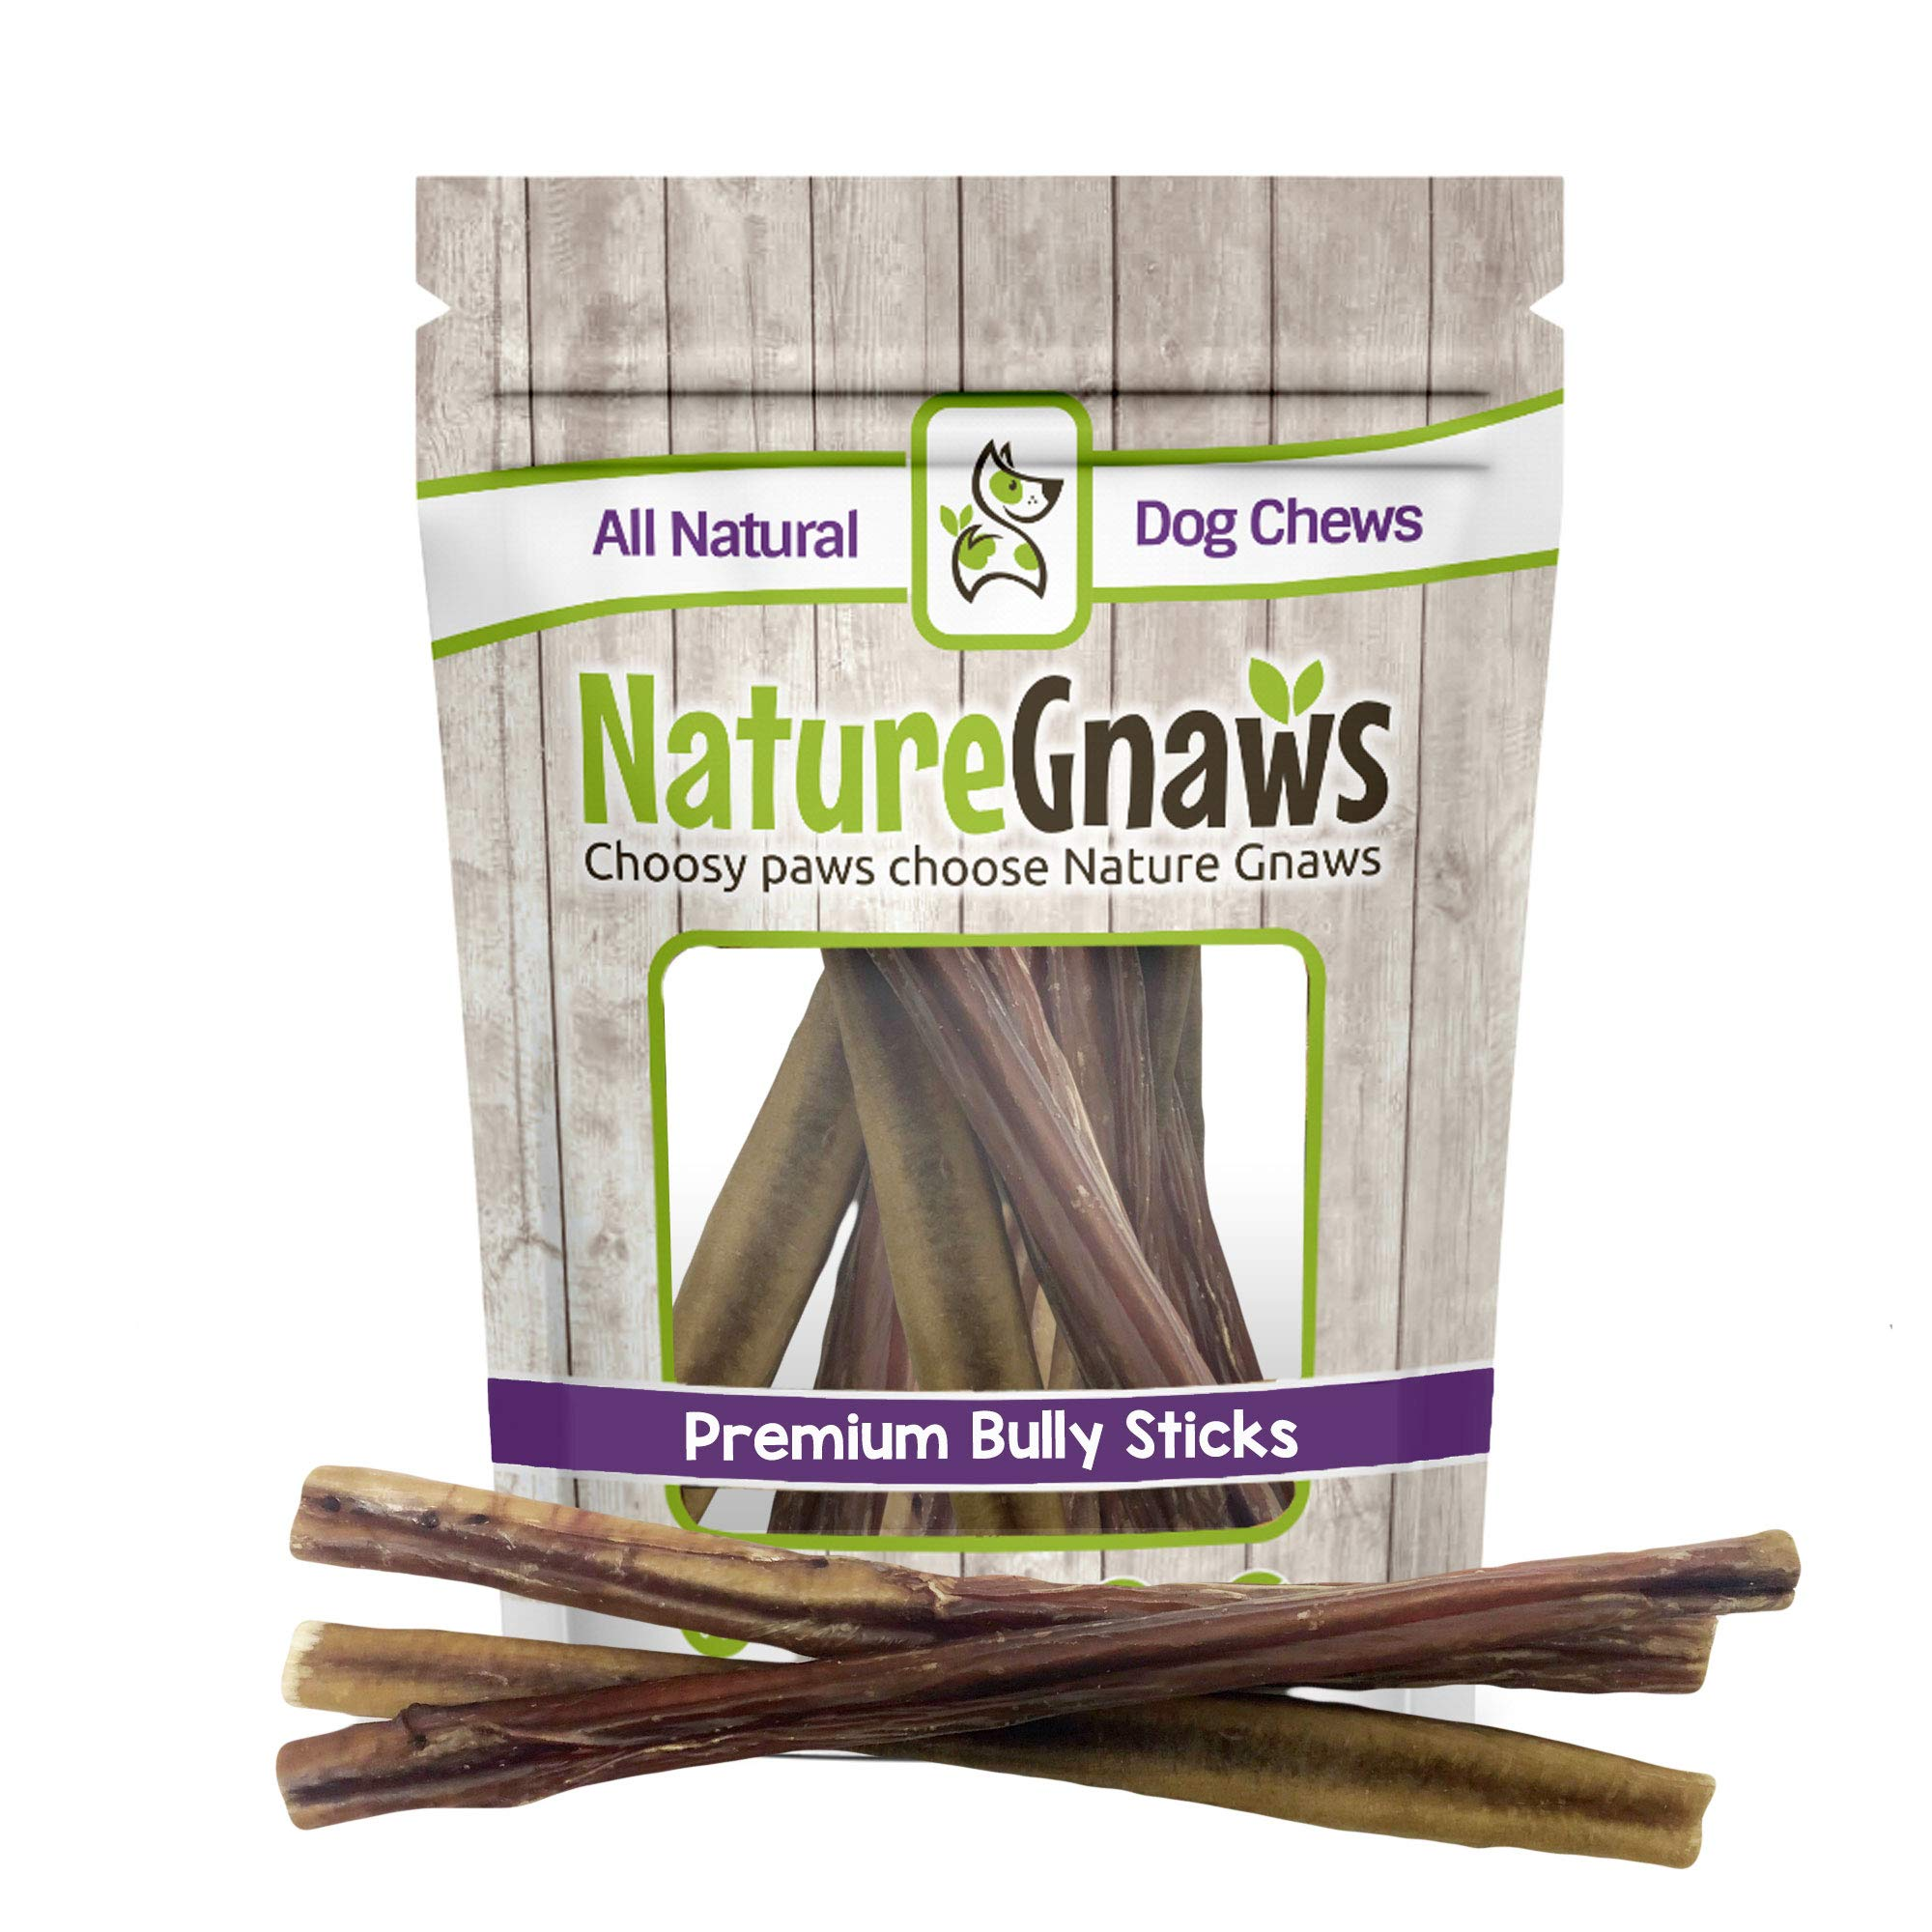 Nature Gnaws Large Bully Sticks 11-12'' (10 Pack) - 100% All Natural Grass-Fed Free-Range Premium Beef Dog Chews